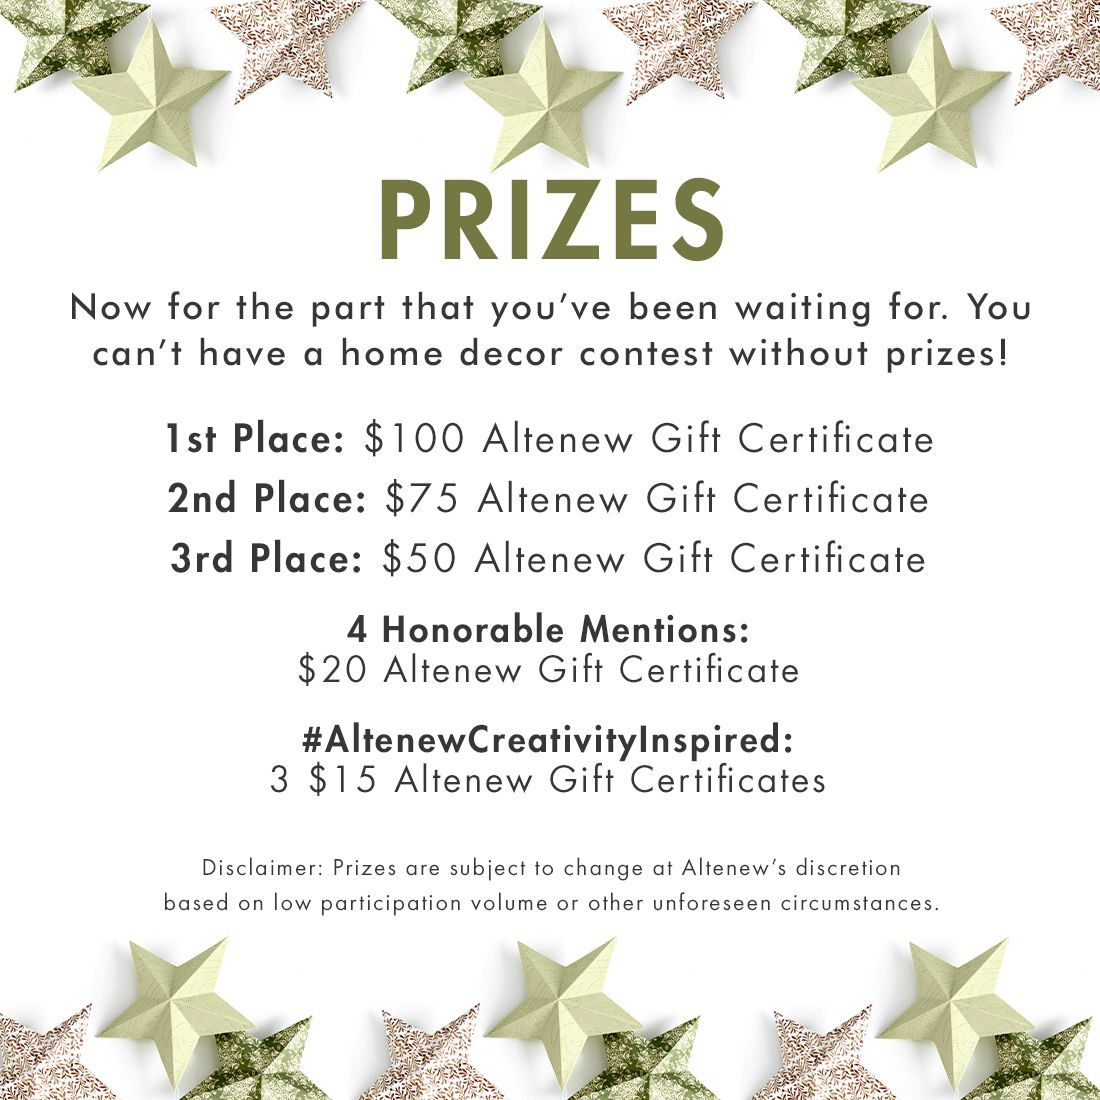 Altenew Creativity Inspired Decked Out Decorations Home Decor Contest